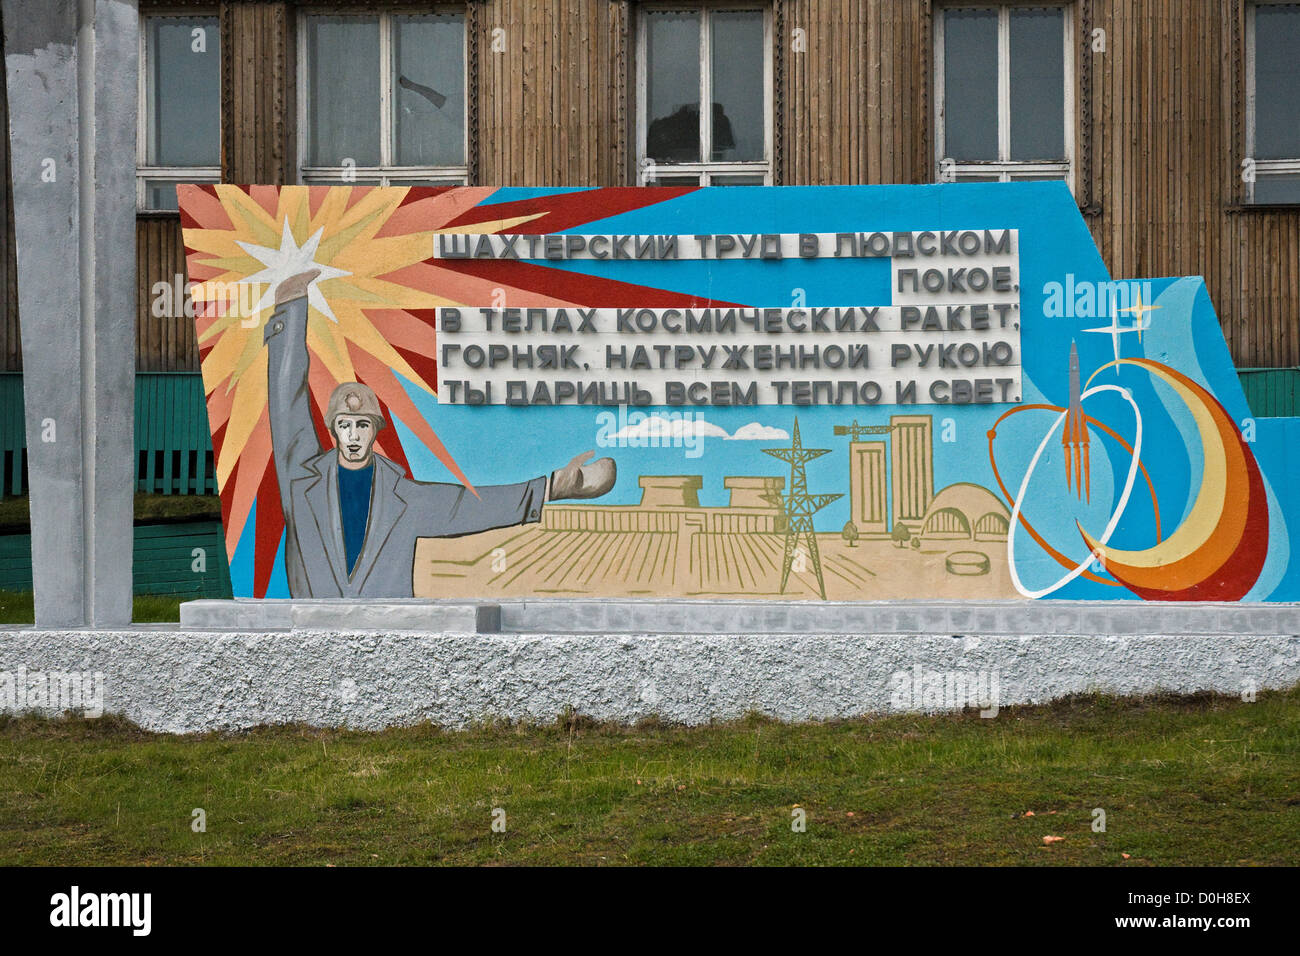 Sign depicting a coal miner and energy in Russian coal mining settlement of Barentsburg, Spitsbergen, in summertime. - Stock Image